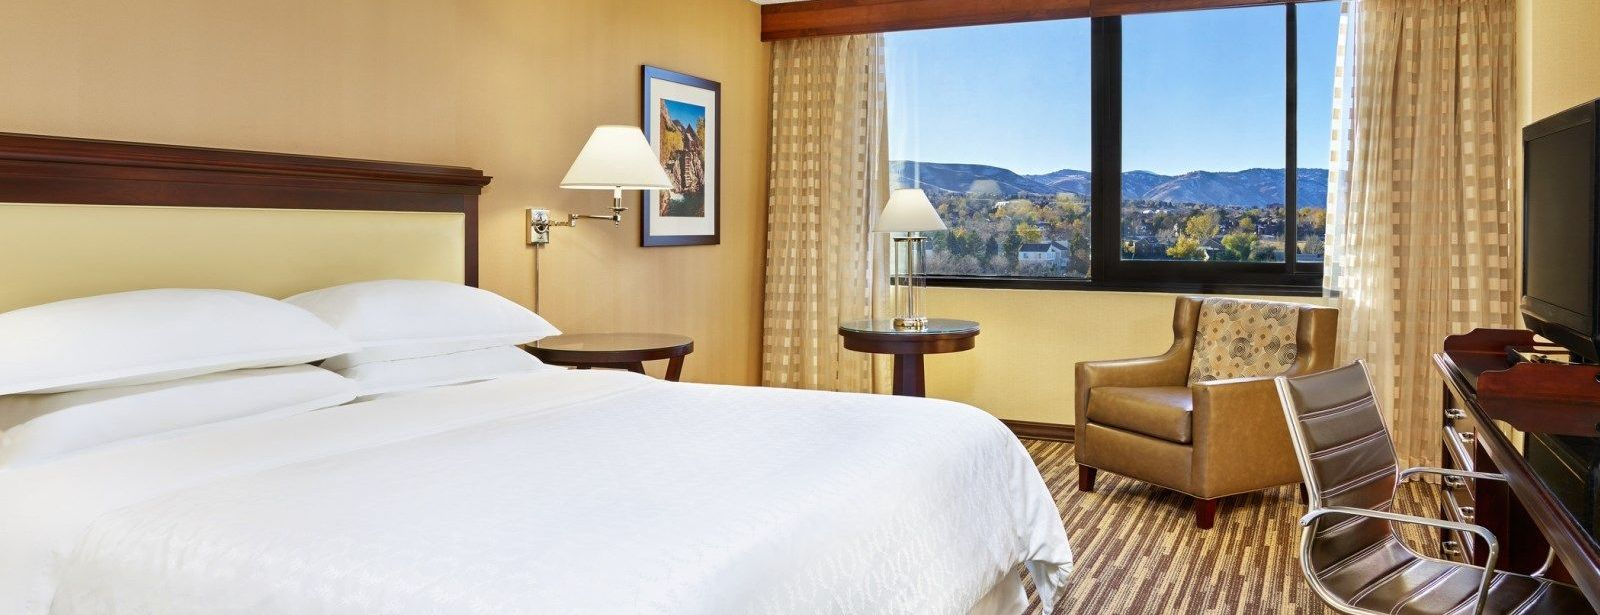 Standard King or Double Room | Sheraton Denver West Hotel